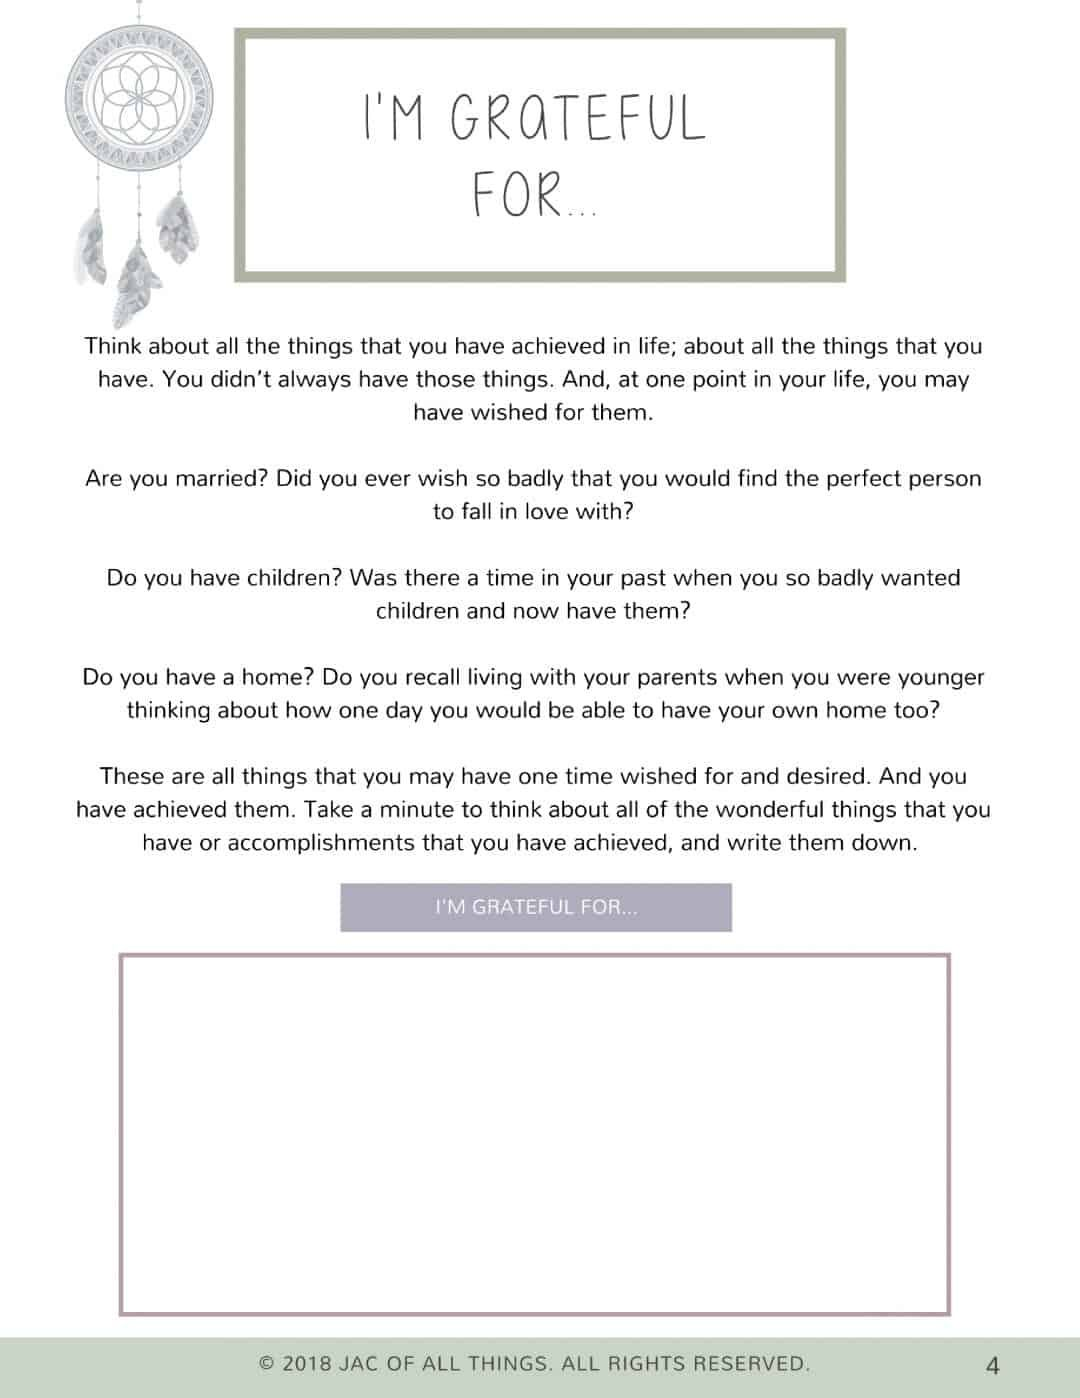 Goal Setting Worksheets How To Turn Your Dreams Into Your Reality Free Printable In 2020 Goal Setting Worksheet Free Goal Setting Worksheet 6th Grade Worksheets